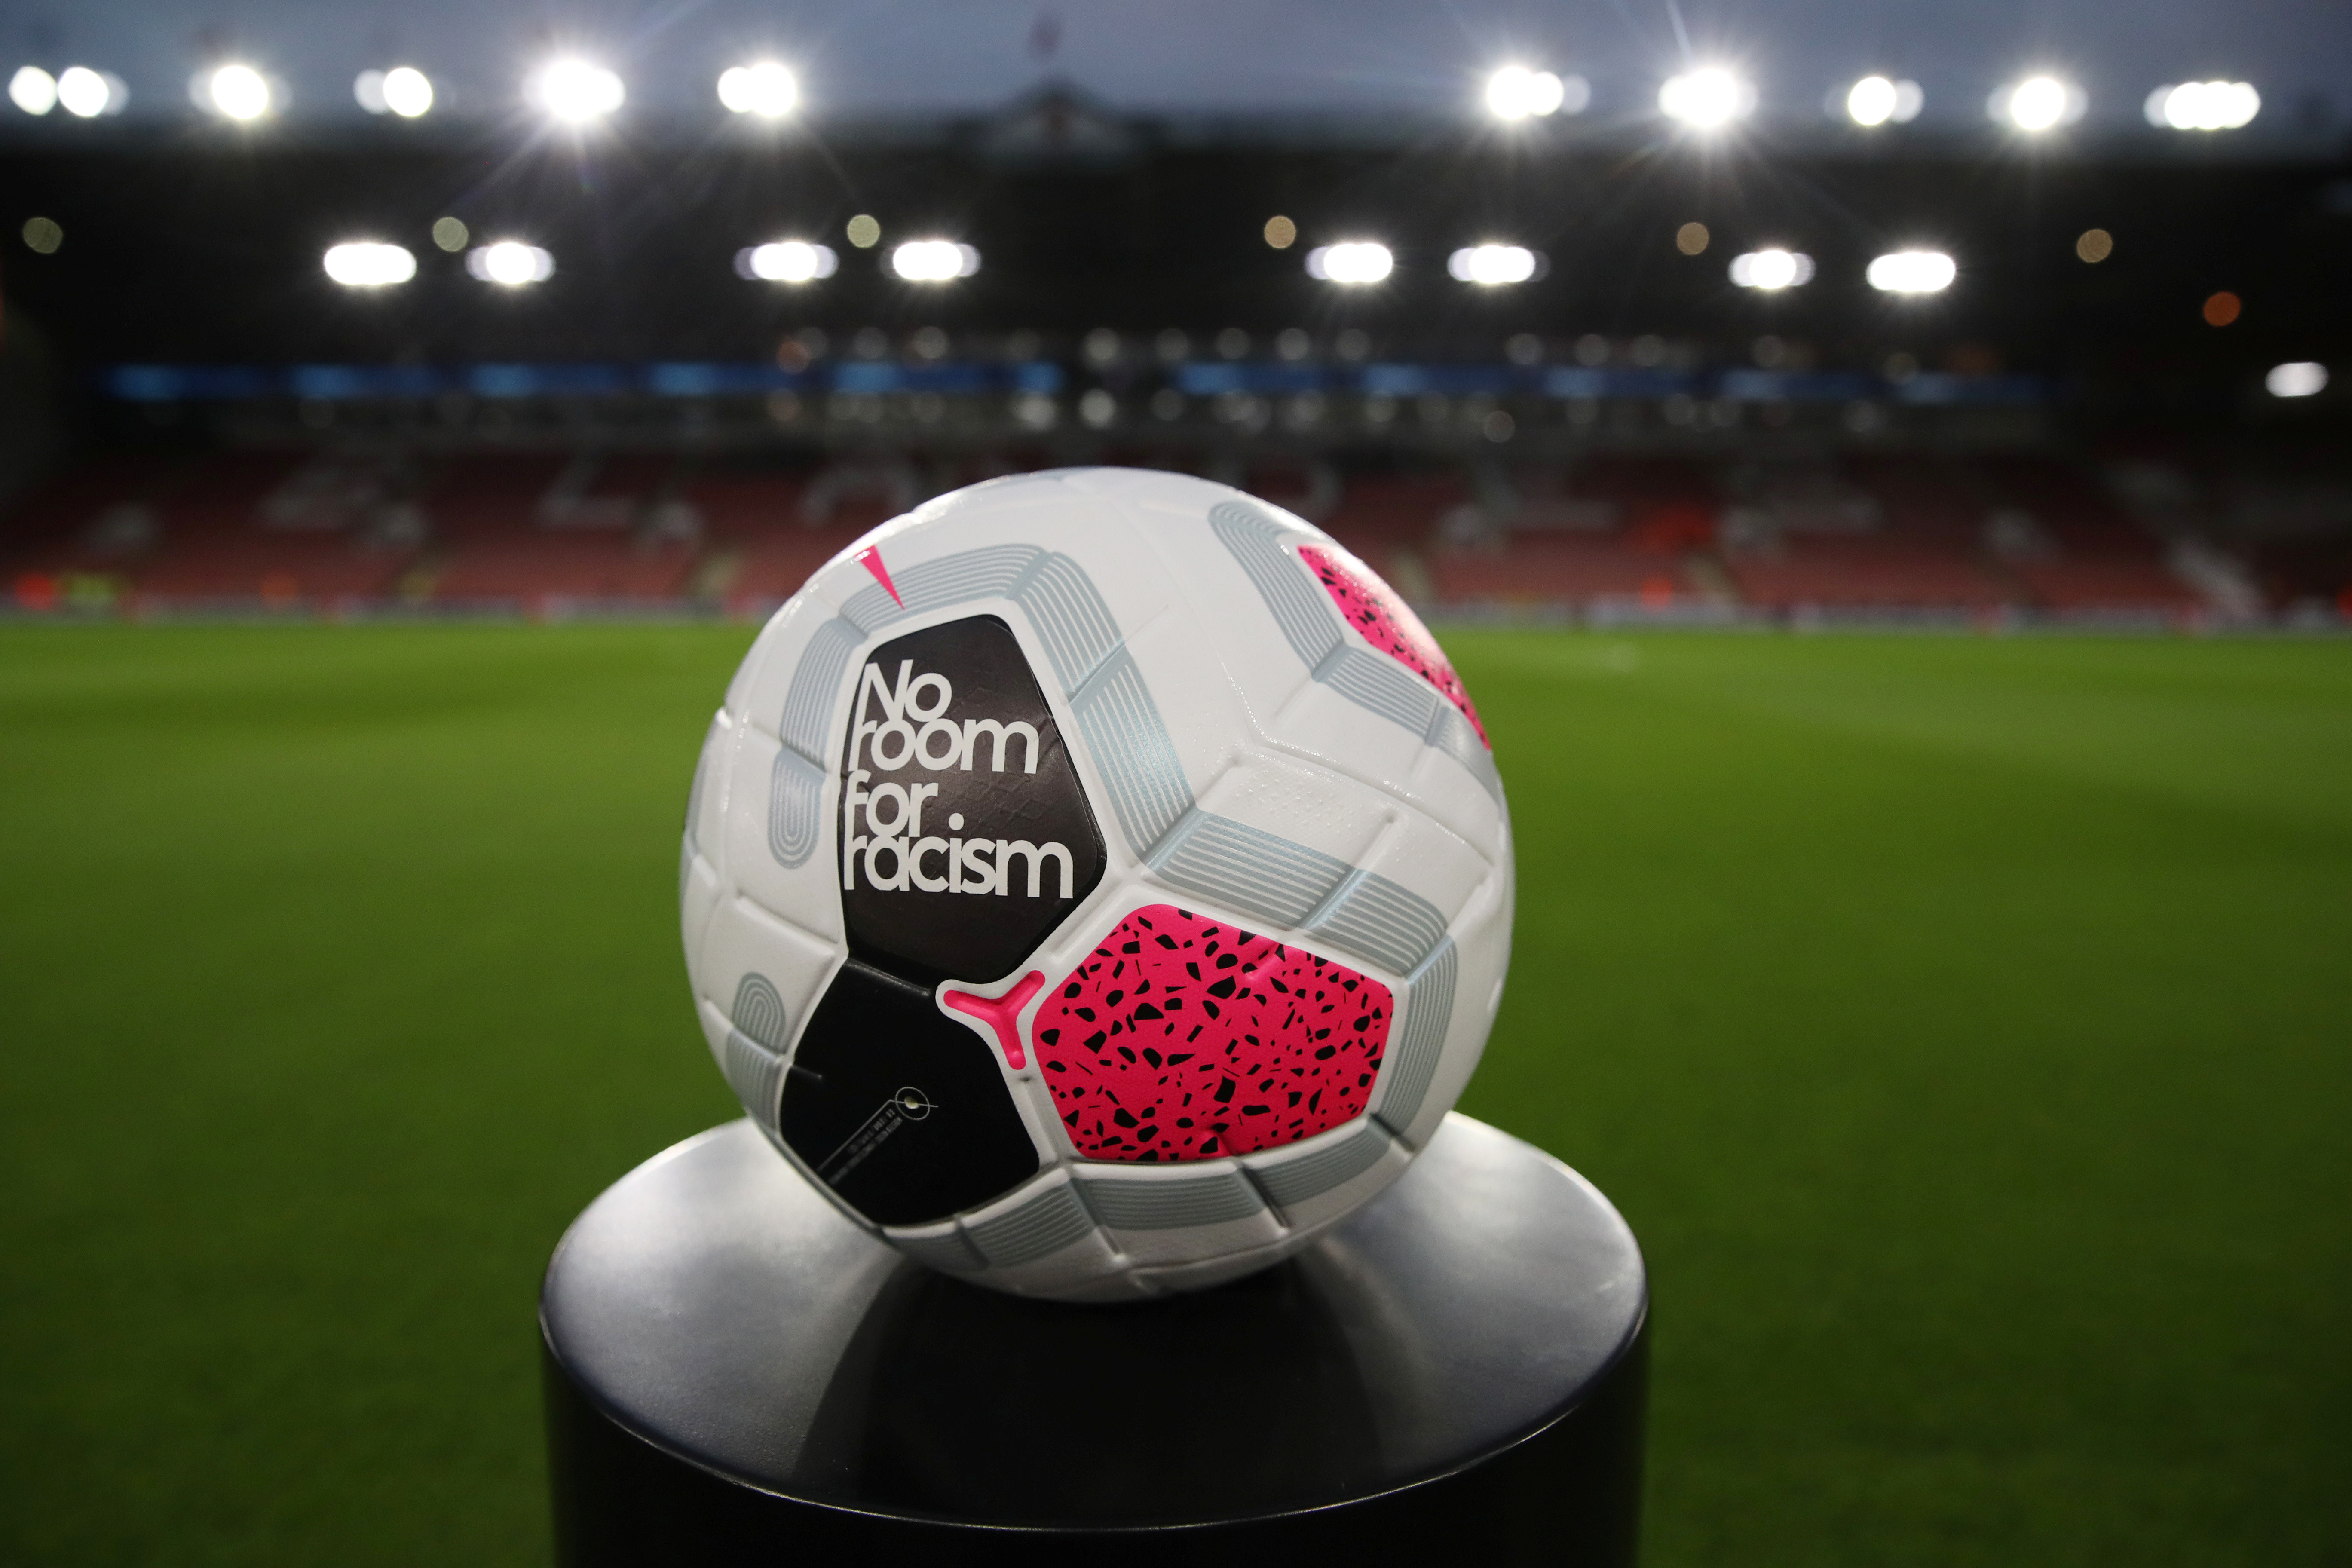 """Soccer Football - Premier League - Sheffield United v Arsenal - Bramall Lane, Sheffield, Britain - October 21, 2019  General view of the matchball with a 'No Room for Racism' message inside the stadium before the match   Action Images via Reuters/Carl Recine  EDITORIAL USE ONLY. No use with unauthorized audio, video, data, fixture lists, club/league logos or """"live"""" services. Online in-match use limited to 75 images, no video emulation. No use in betting, games or single club/league/player publications.  Please contact your account representative for further details. - RC1B30D7AB70"""